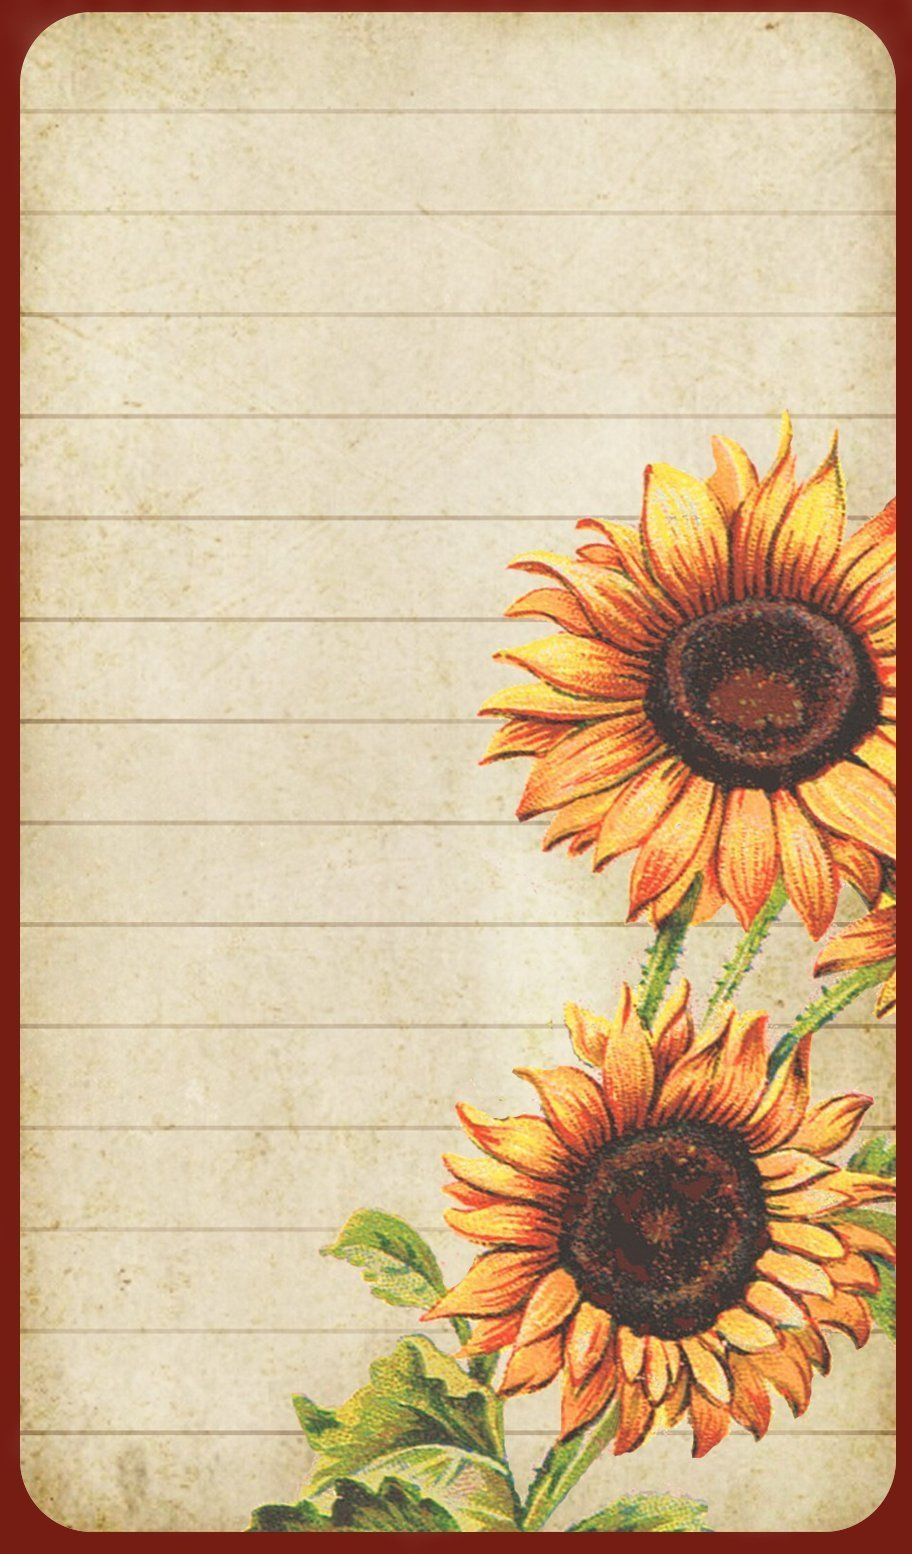 Sunflowers: Free Printable Labels, Recipe Card, Note Paper, Etc - Free Printable Sunflower Stationery